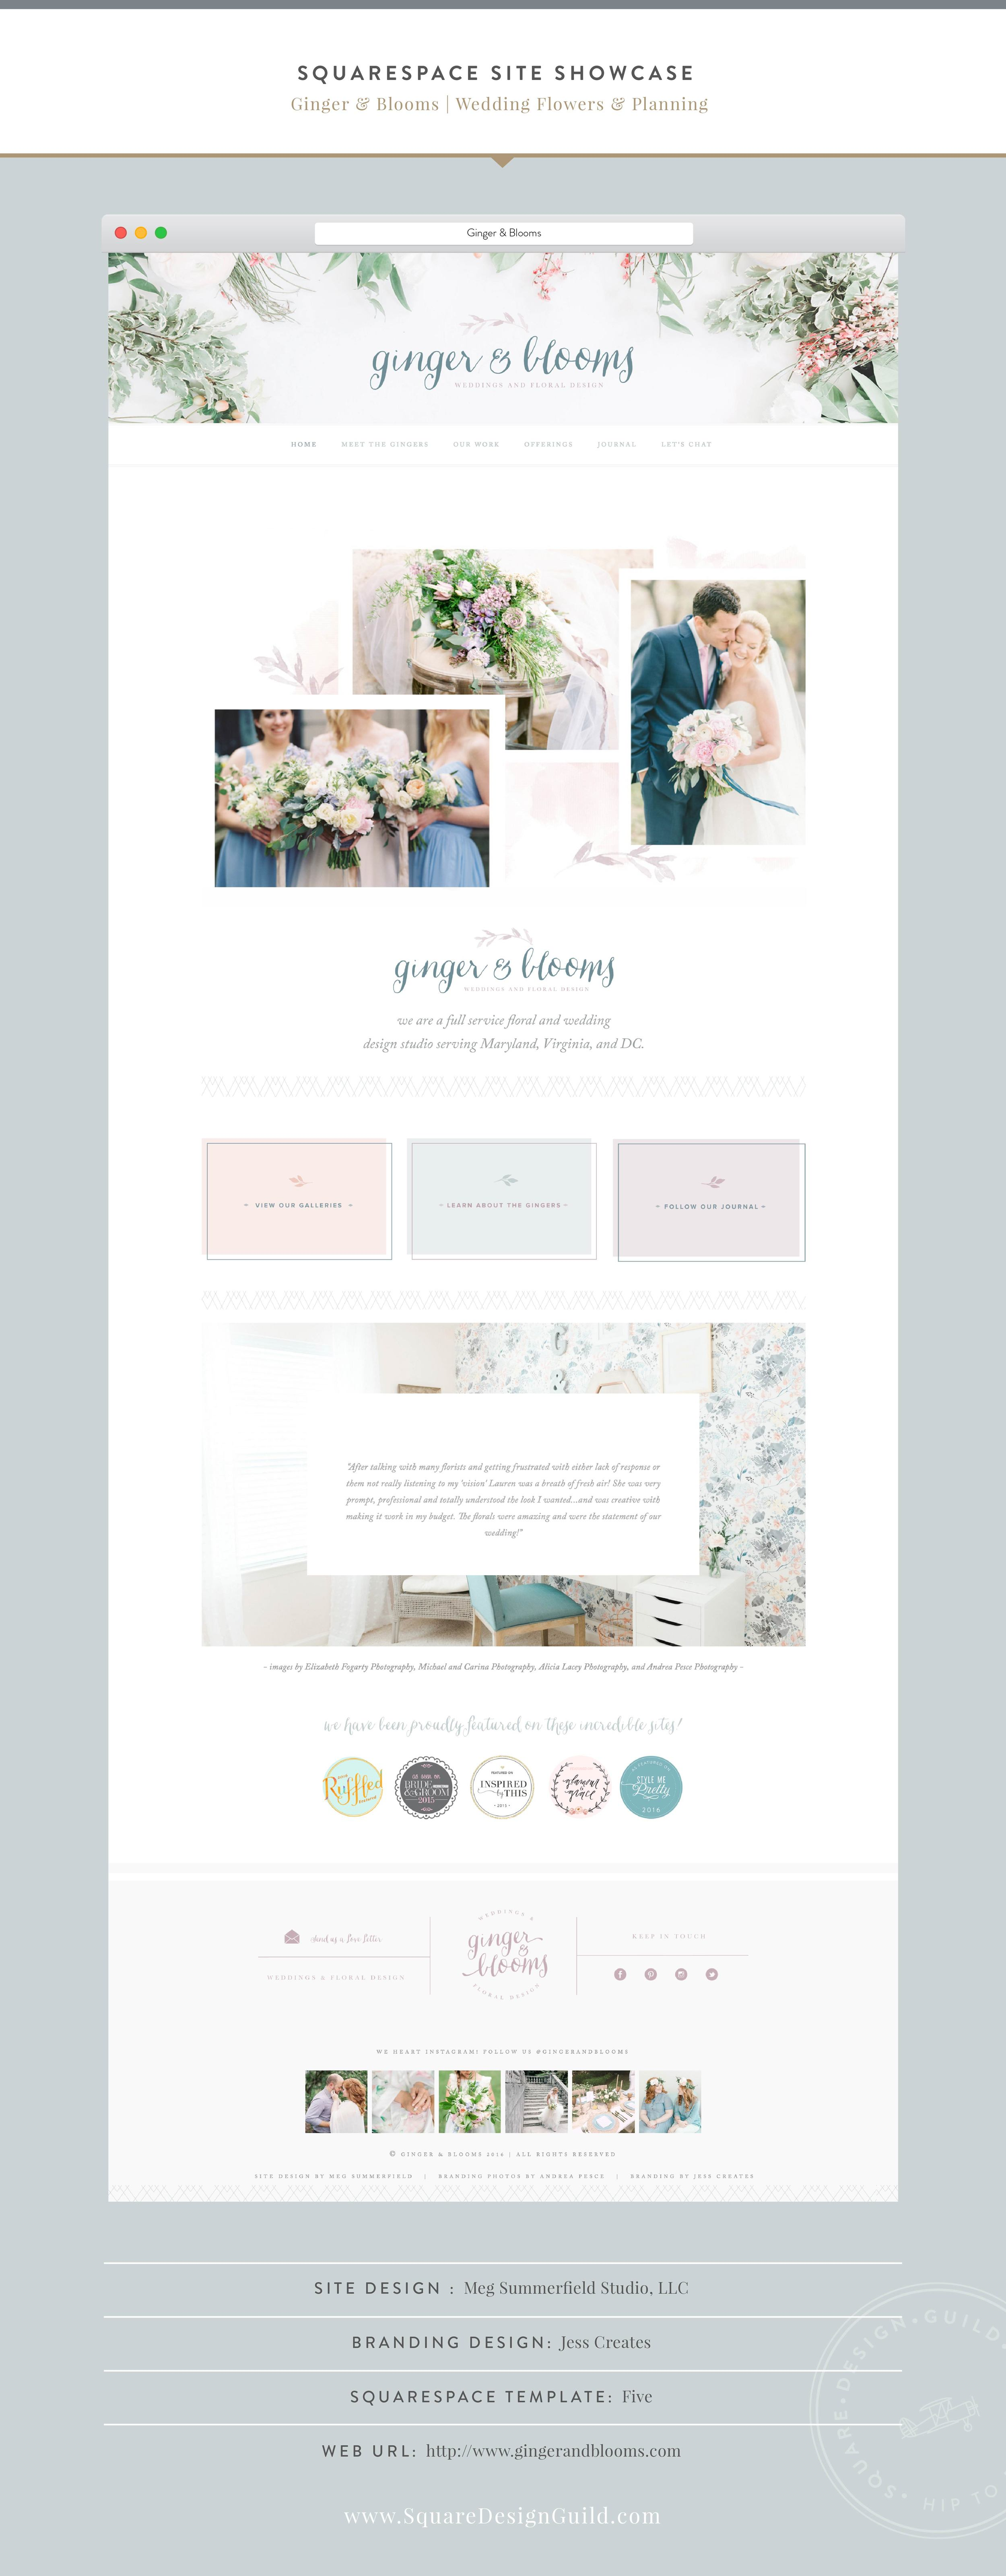 Squarespace Design Guild | Site Showcase | Ginger & Blooms by Meg Summerfield on the Five Template